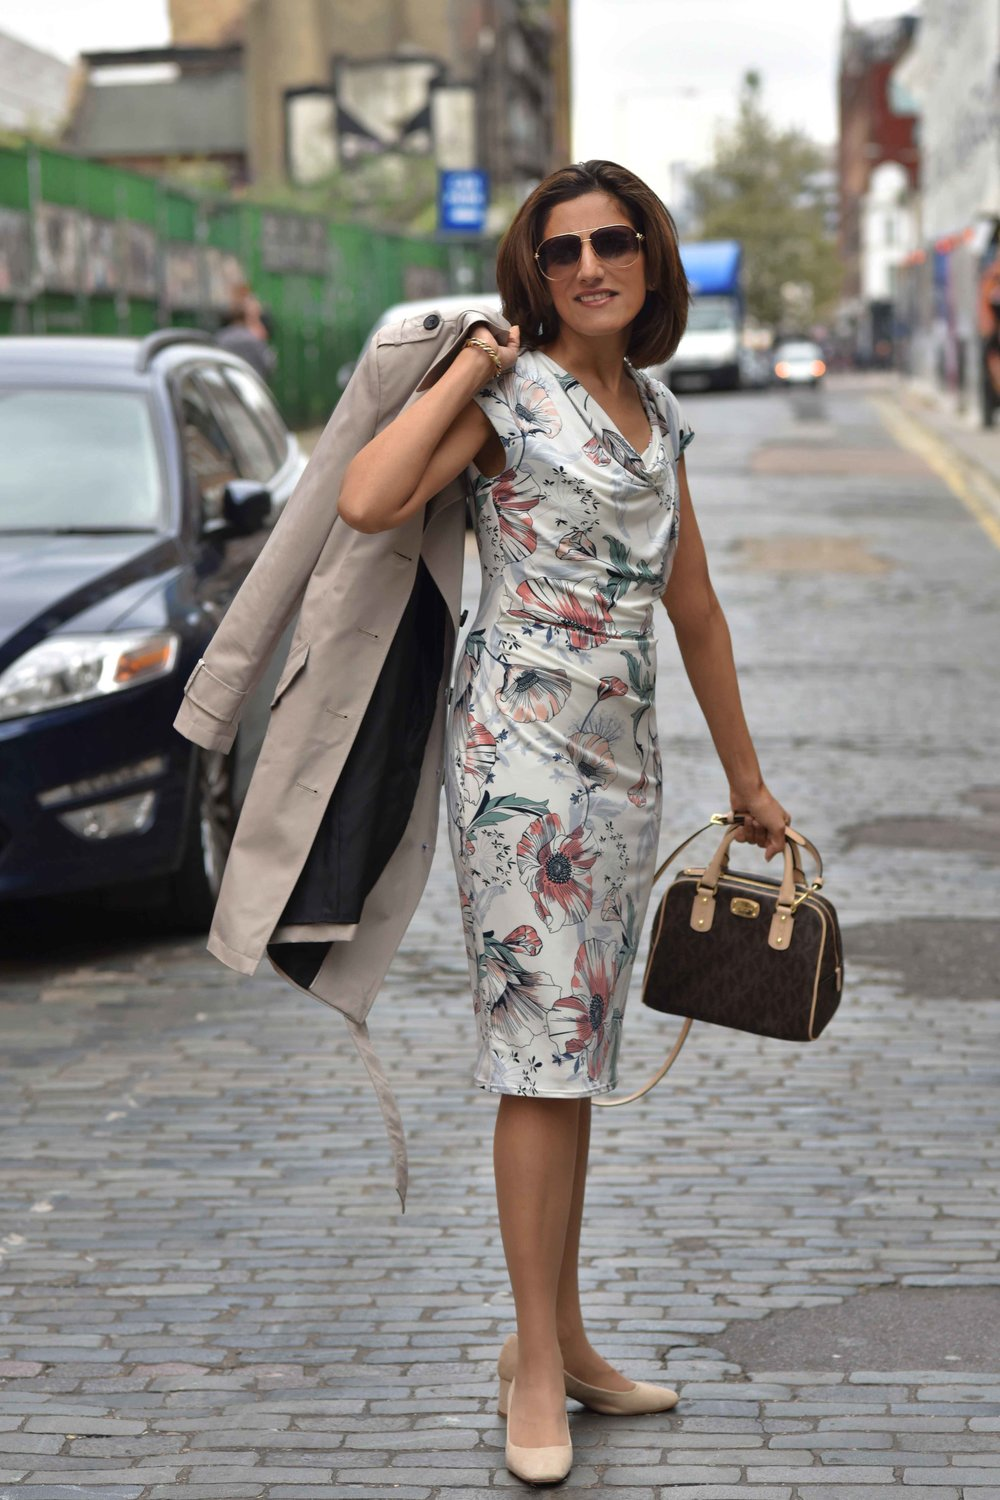 Marks and Spencer shift dress, Marks and Spencer trench, Gucci sunglasses, Michael Kors handbag, Zara sandals, street fashion, Shoreditch, London, U.K. Photo: Nina Shaw, Image©sourcingstyle.com